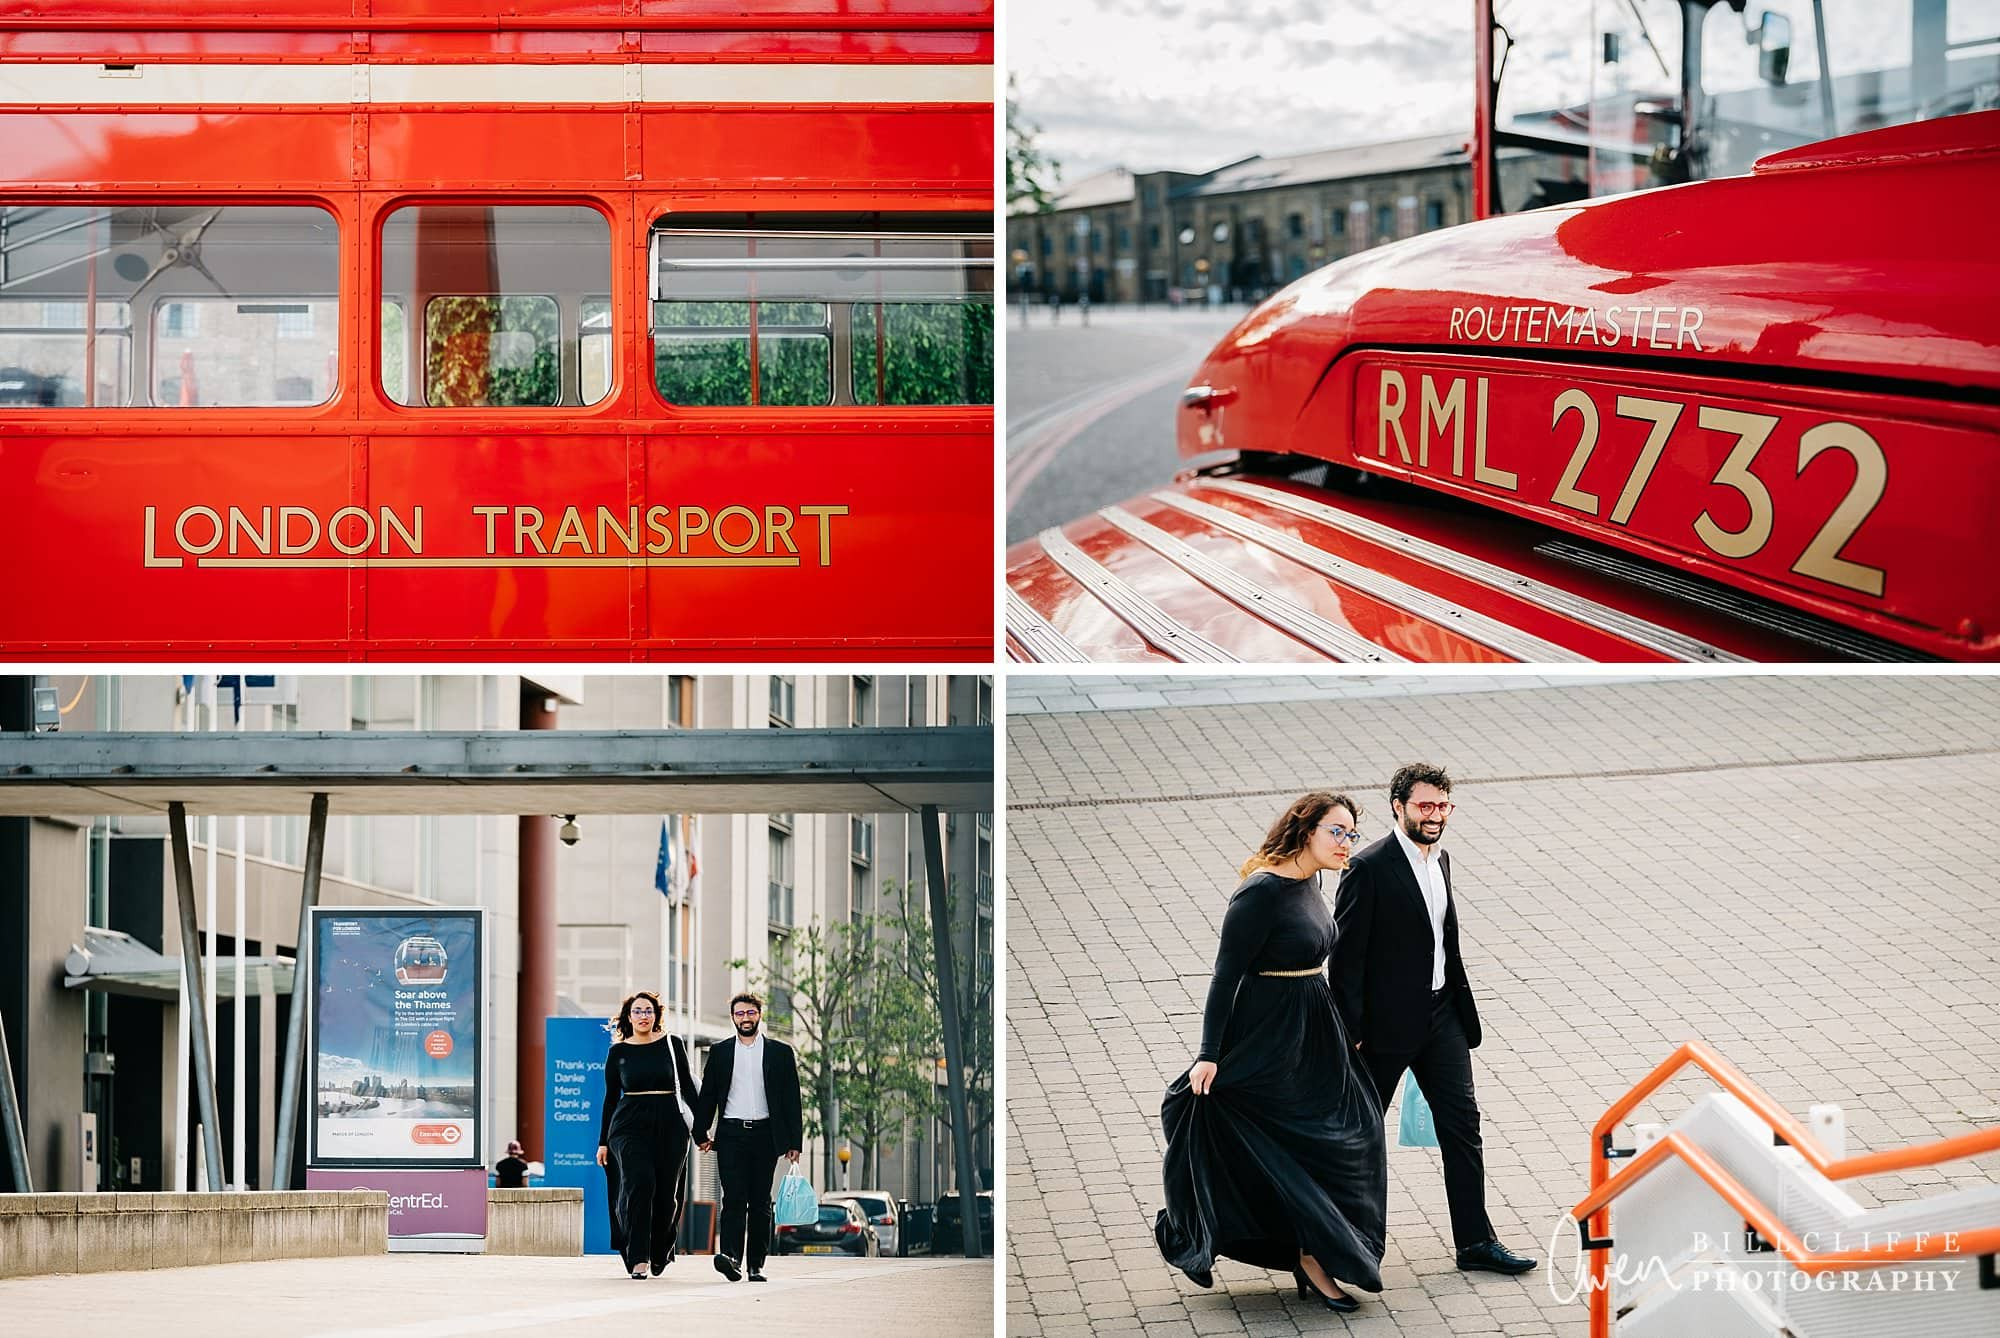 london engagement proposal photographer routemaster gr 002 - A Romantic Marriage Proposal on a London Routemaster Bus